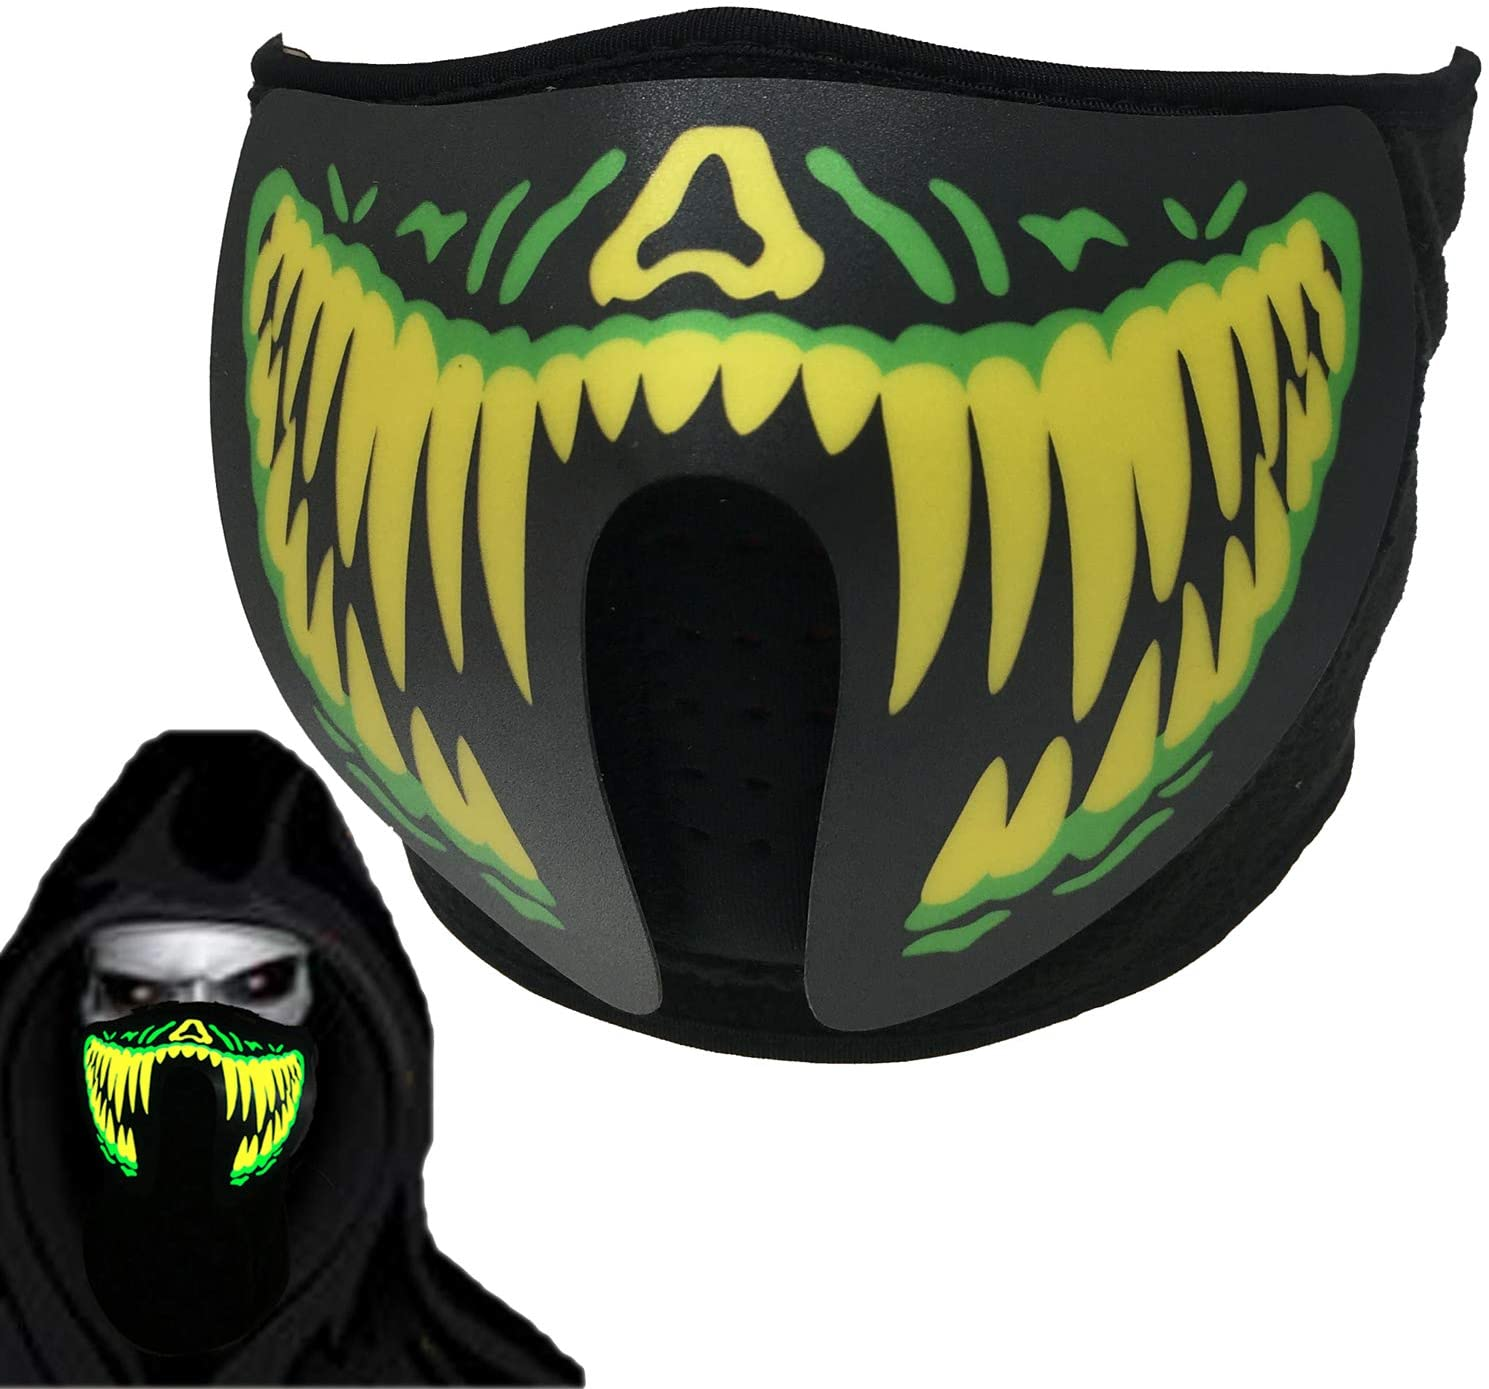 Sound Active LED Halloween Mask Rave Mask Light Up Face Mask Scary Mask for EDM Halloween Party